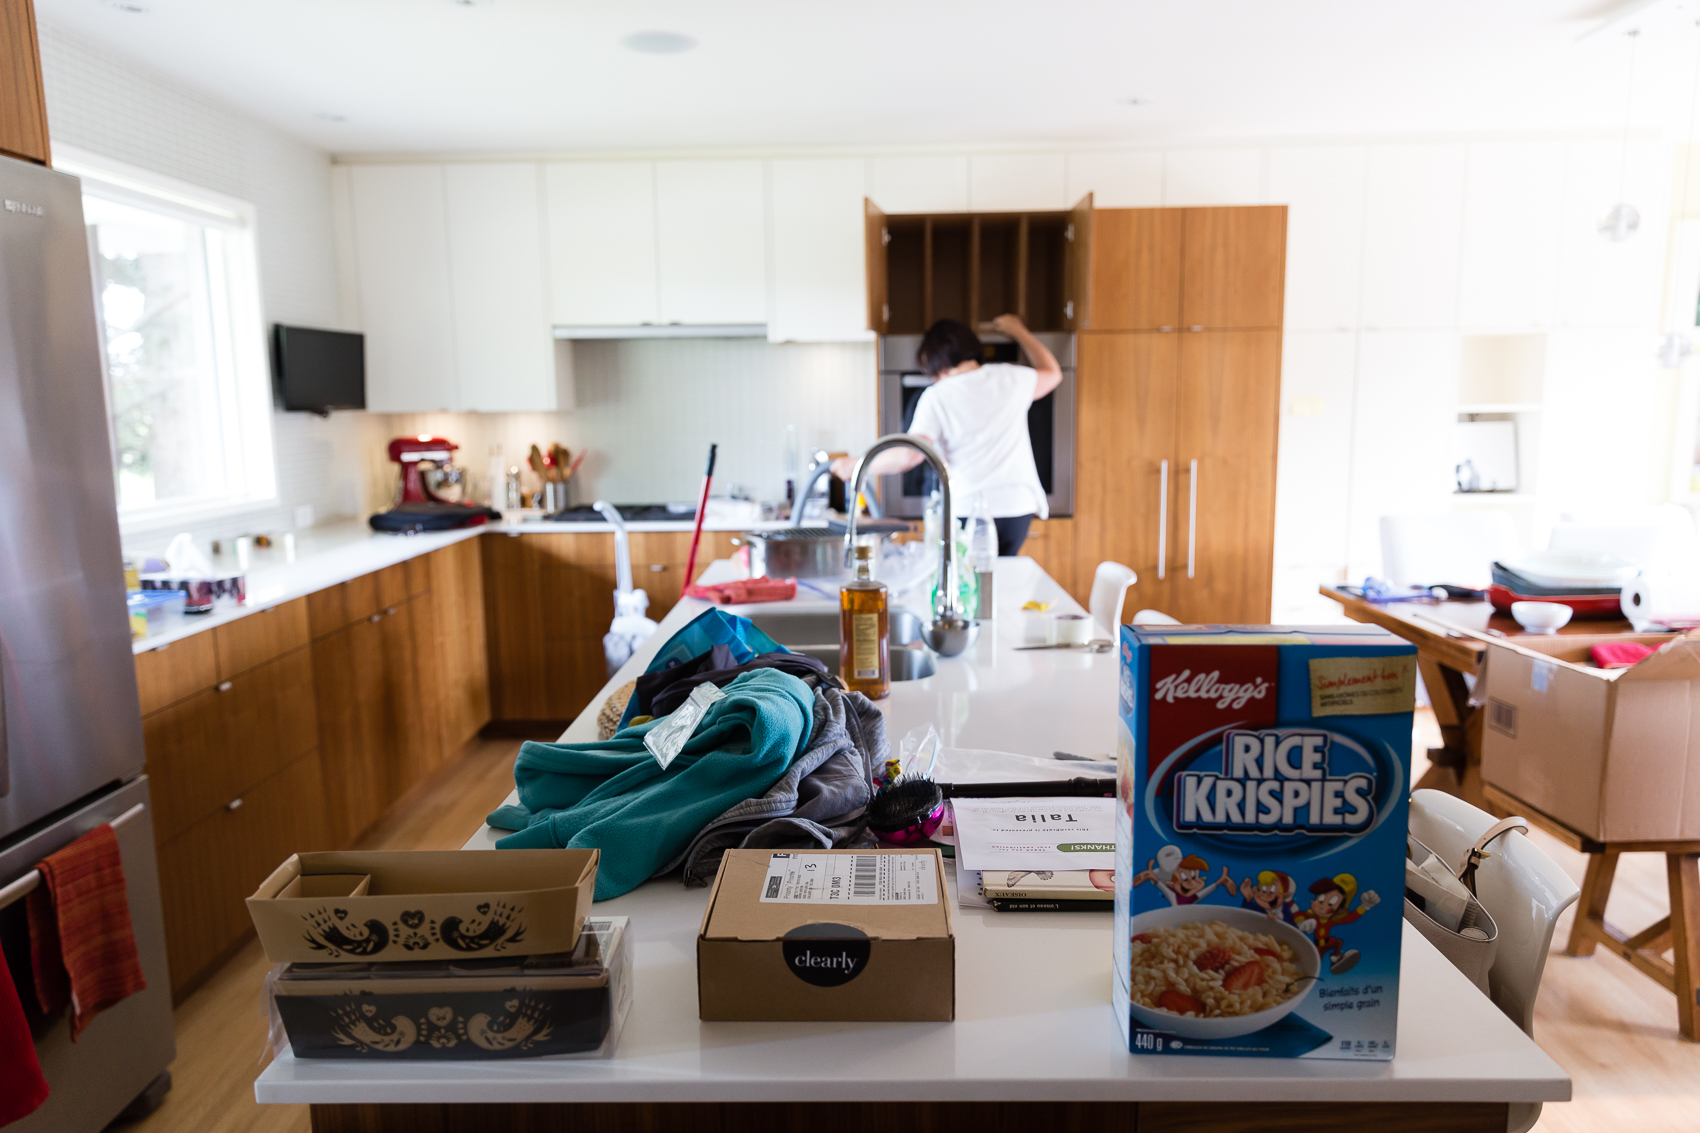 bye bye kitchen - just when you think you have downsized - you then pack up a kitchen..